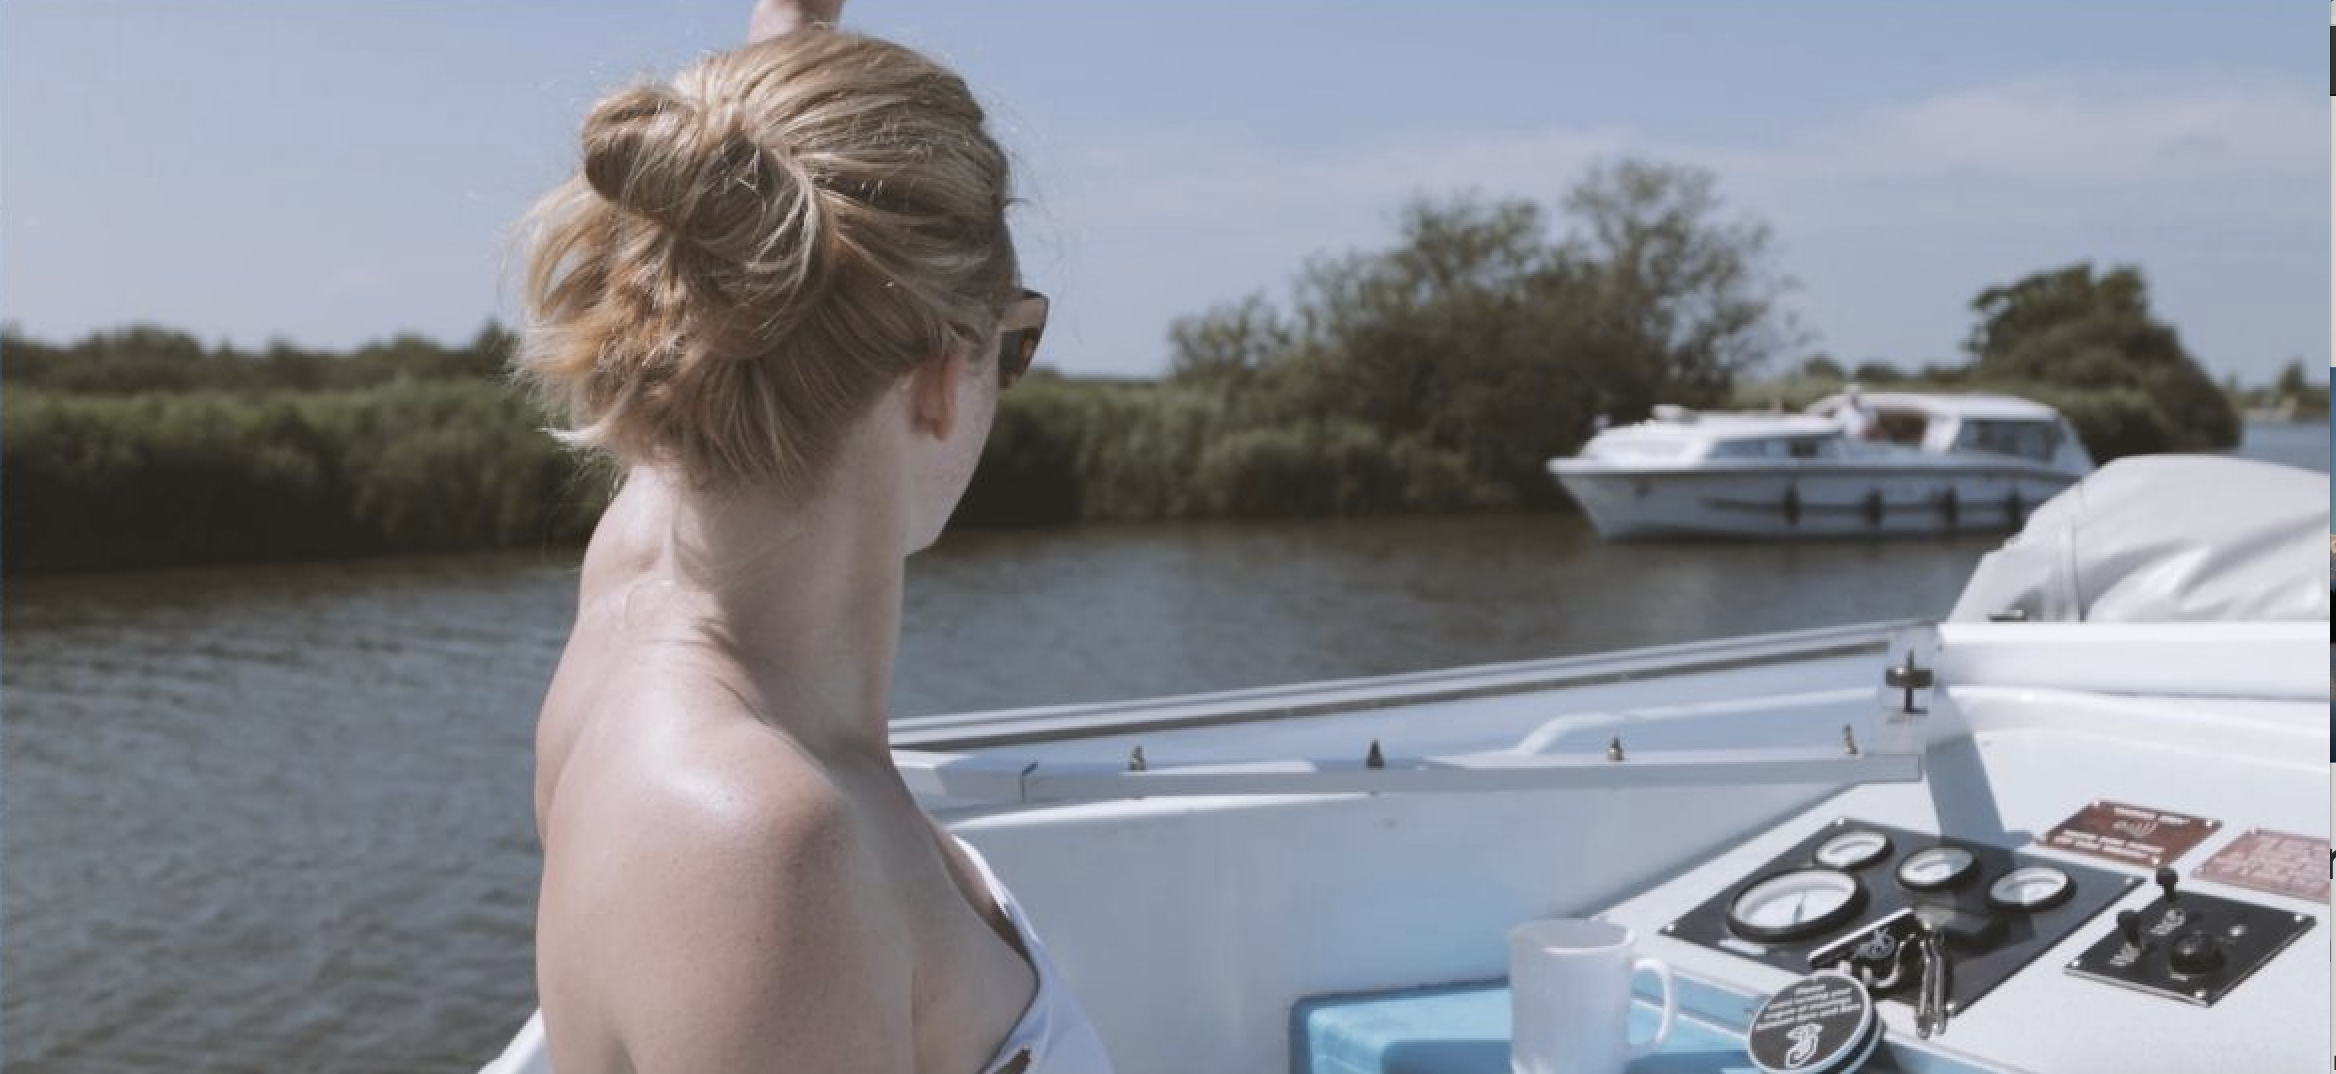 Lady on broad boat looking out over river.